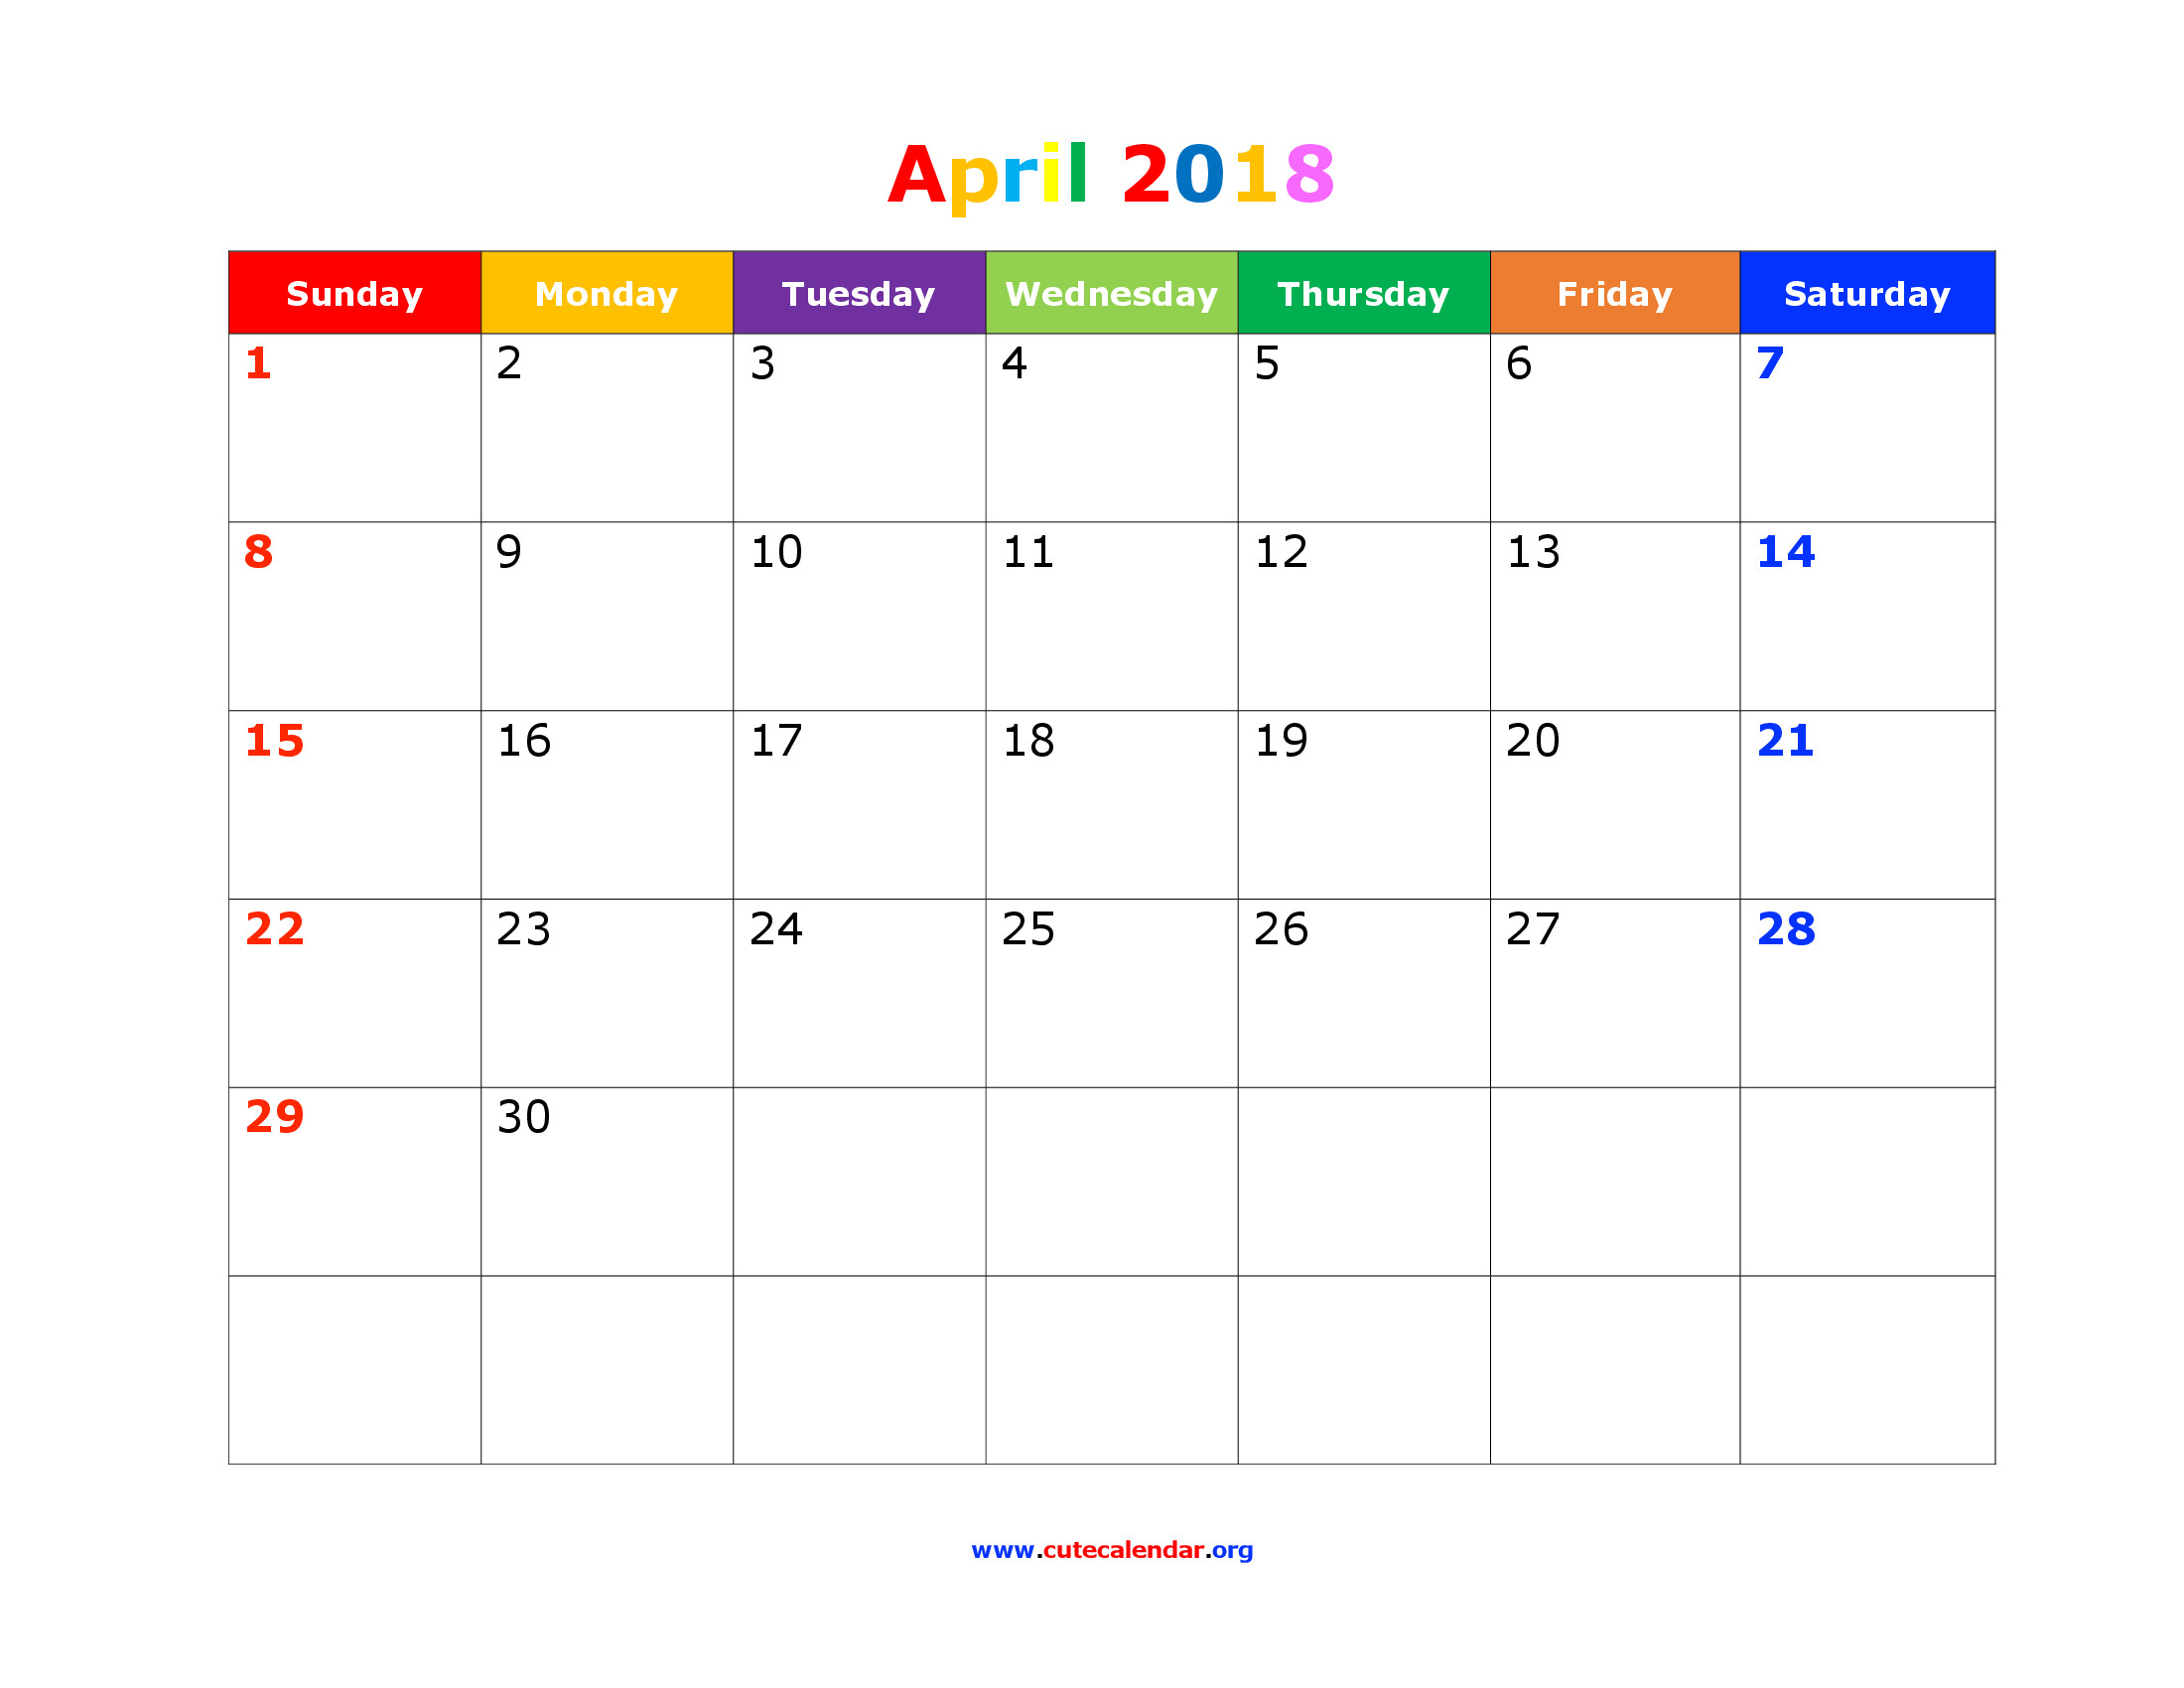 Calendar Free Download For Pc : Desktop wallpapers calendar april ·①